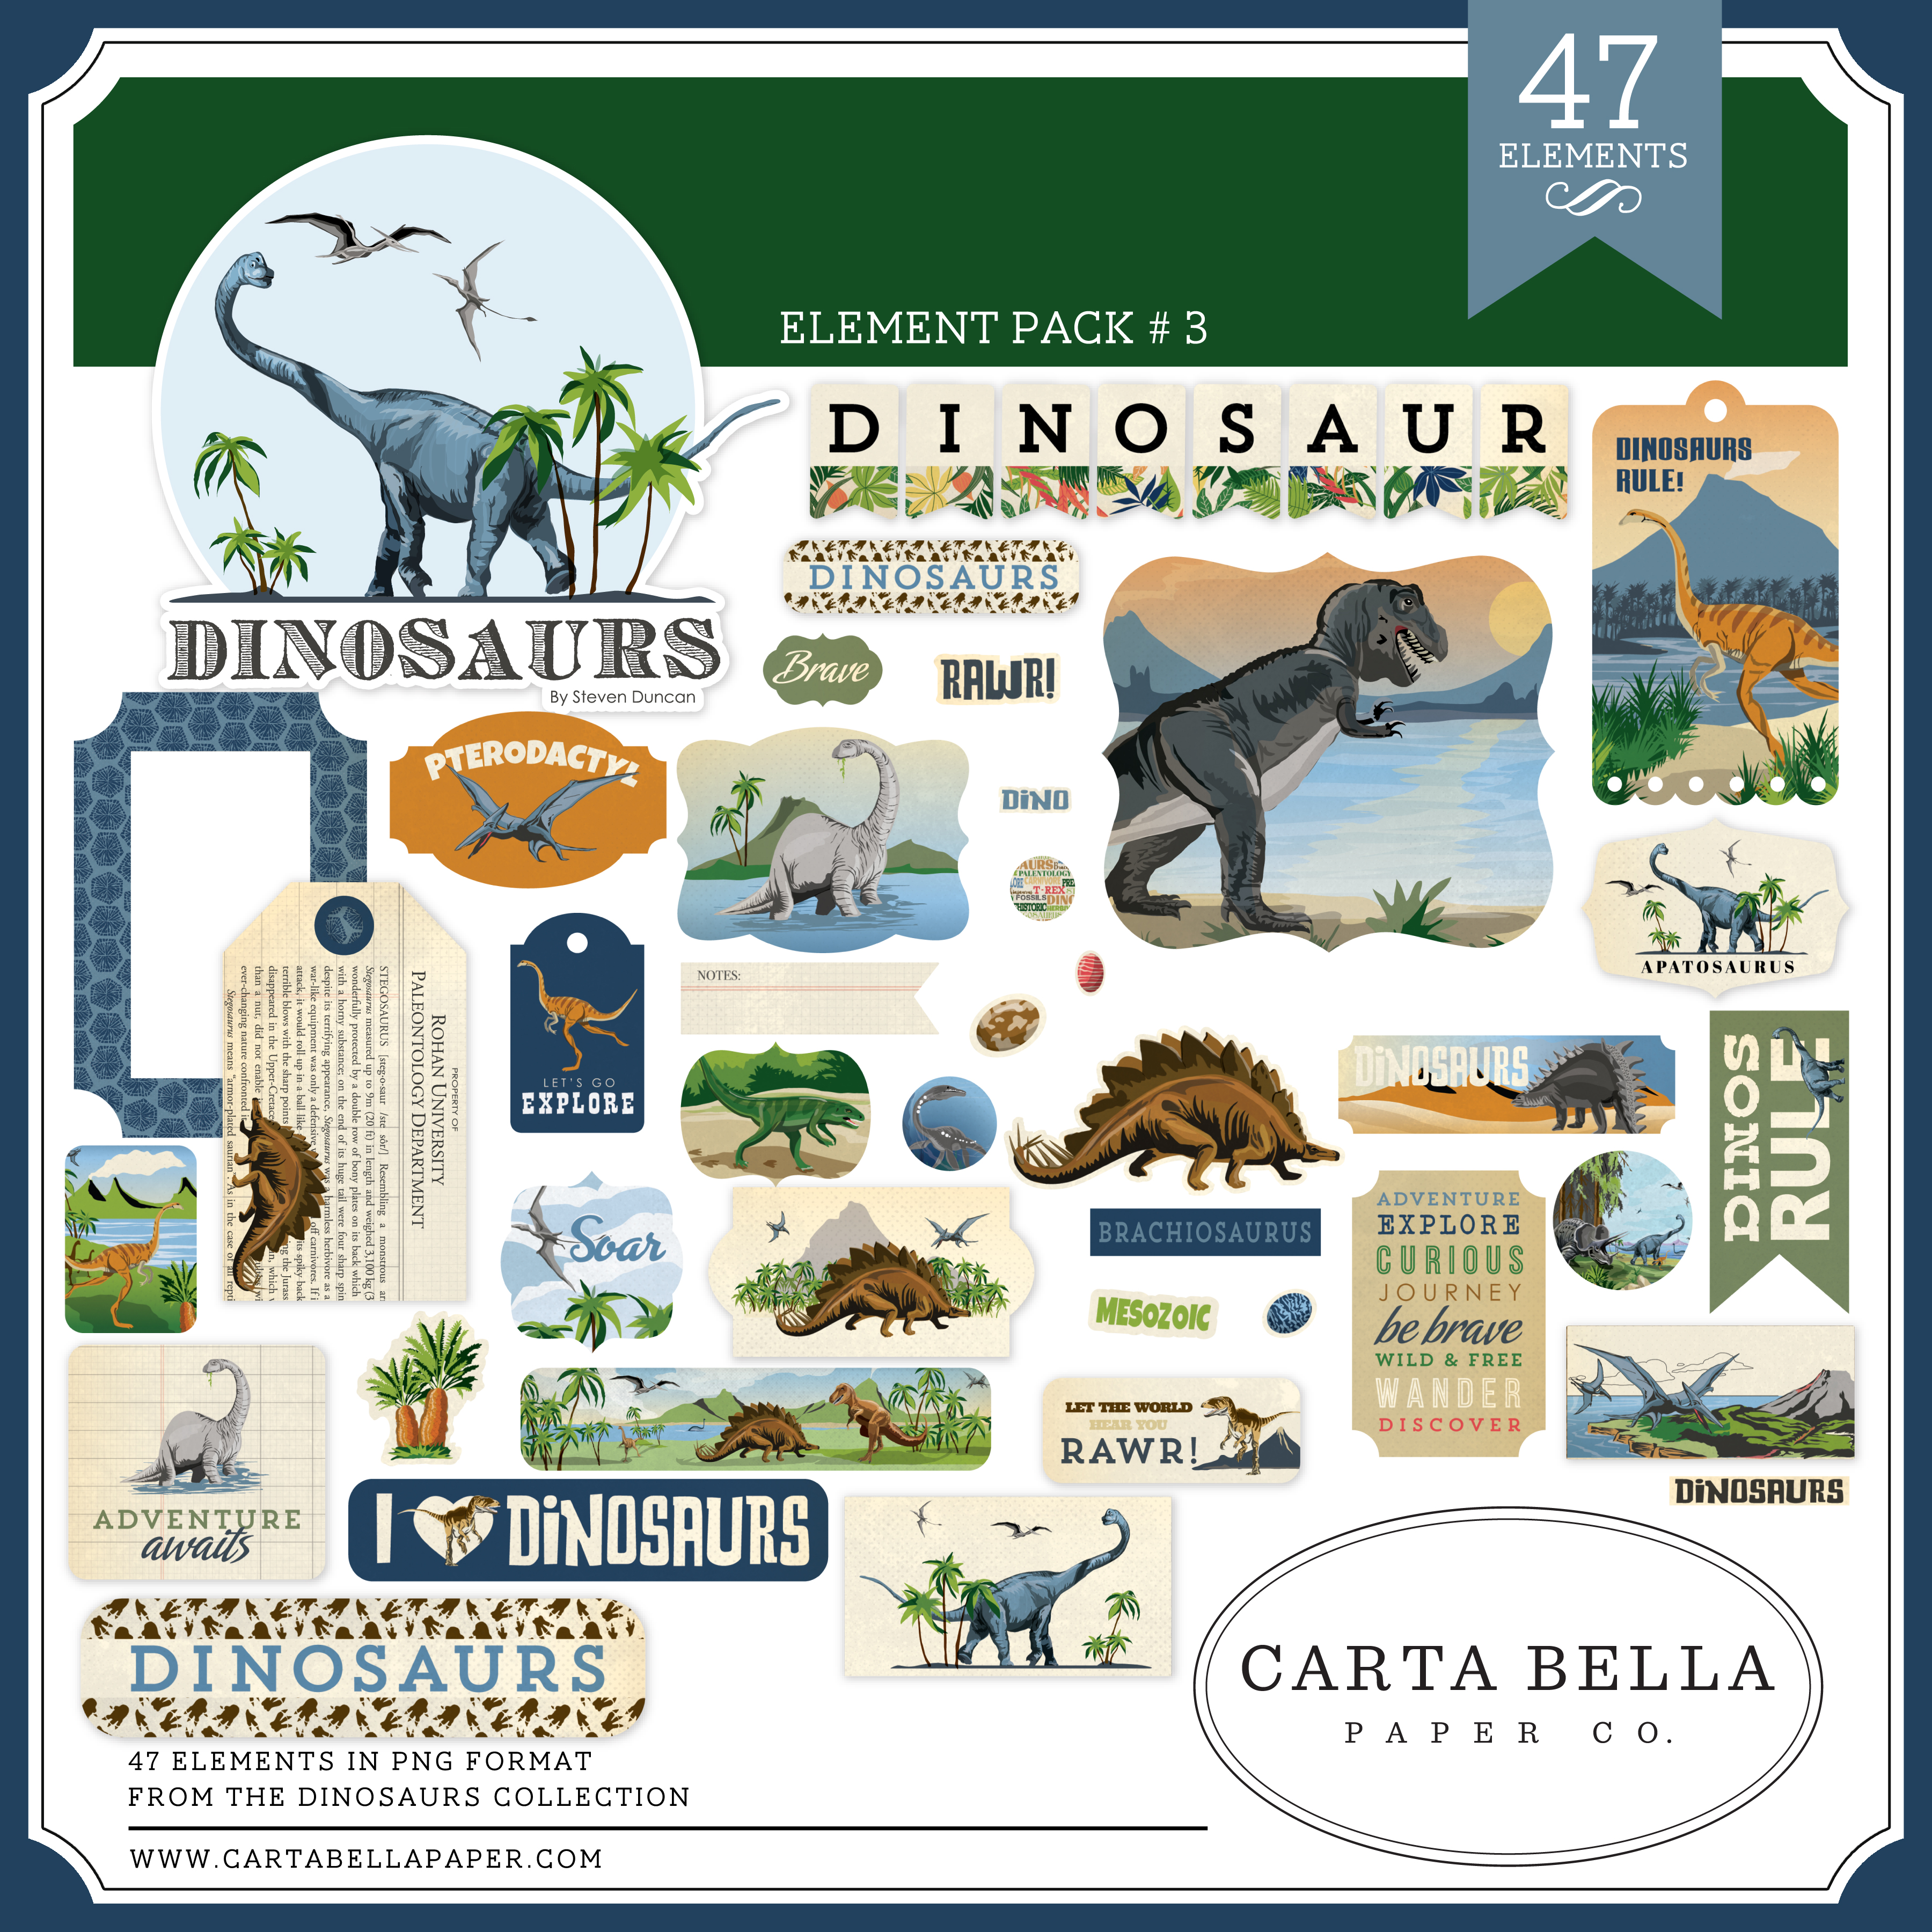 Dinosaurs Element Pack #3